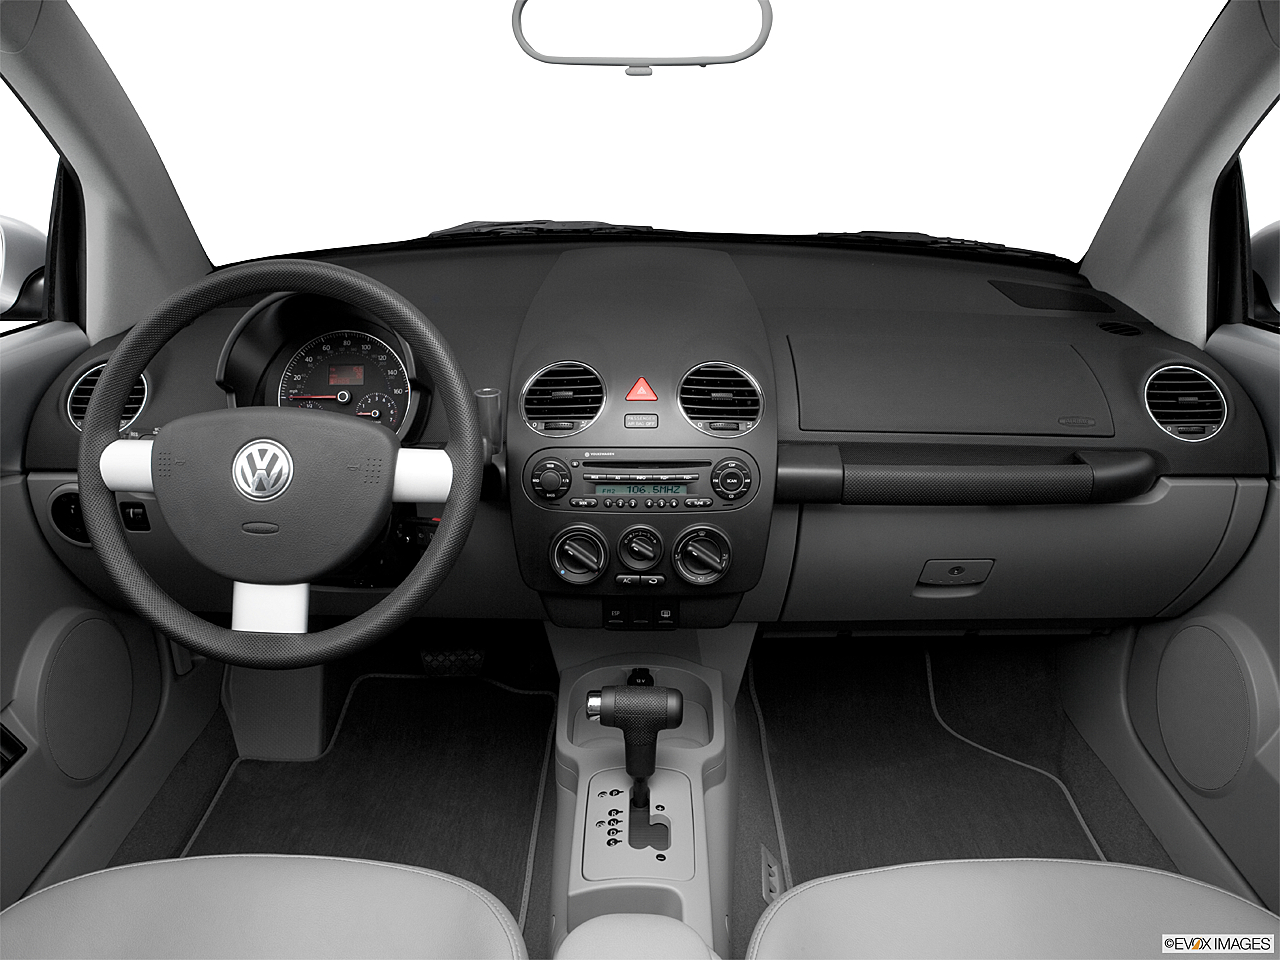 2006 Volkswagen New Beetle 2.5, centered wide dash shot